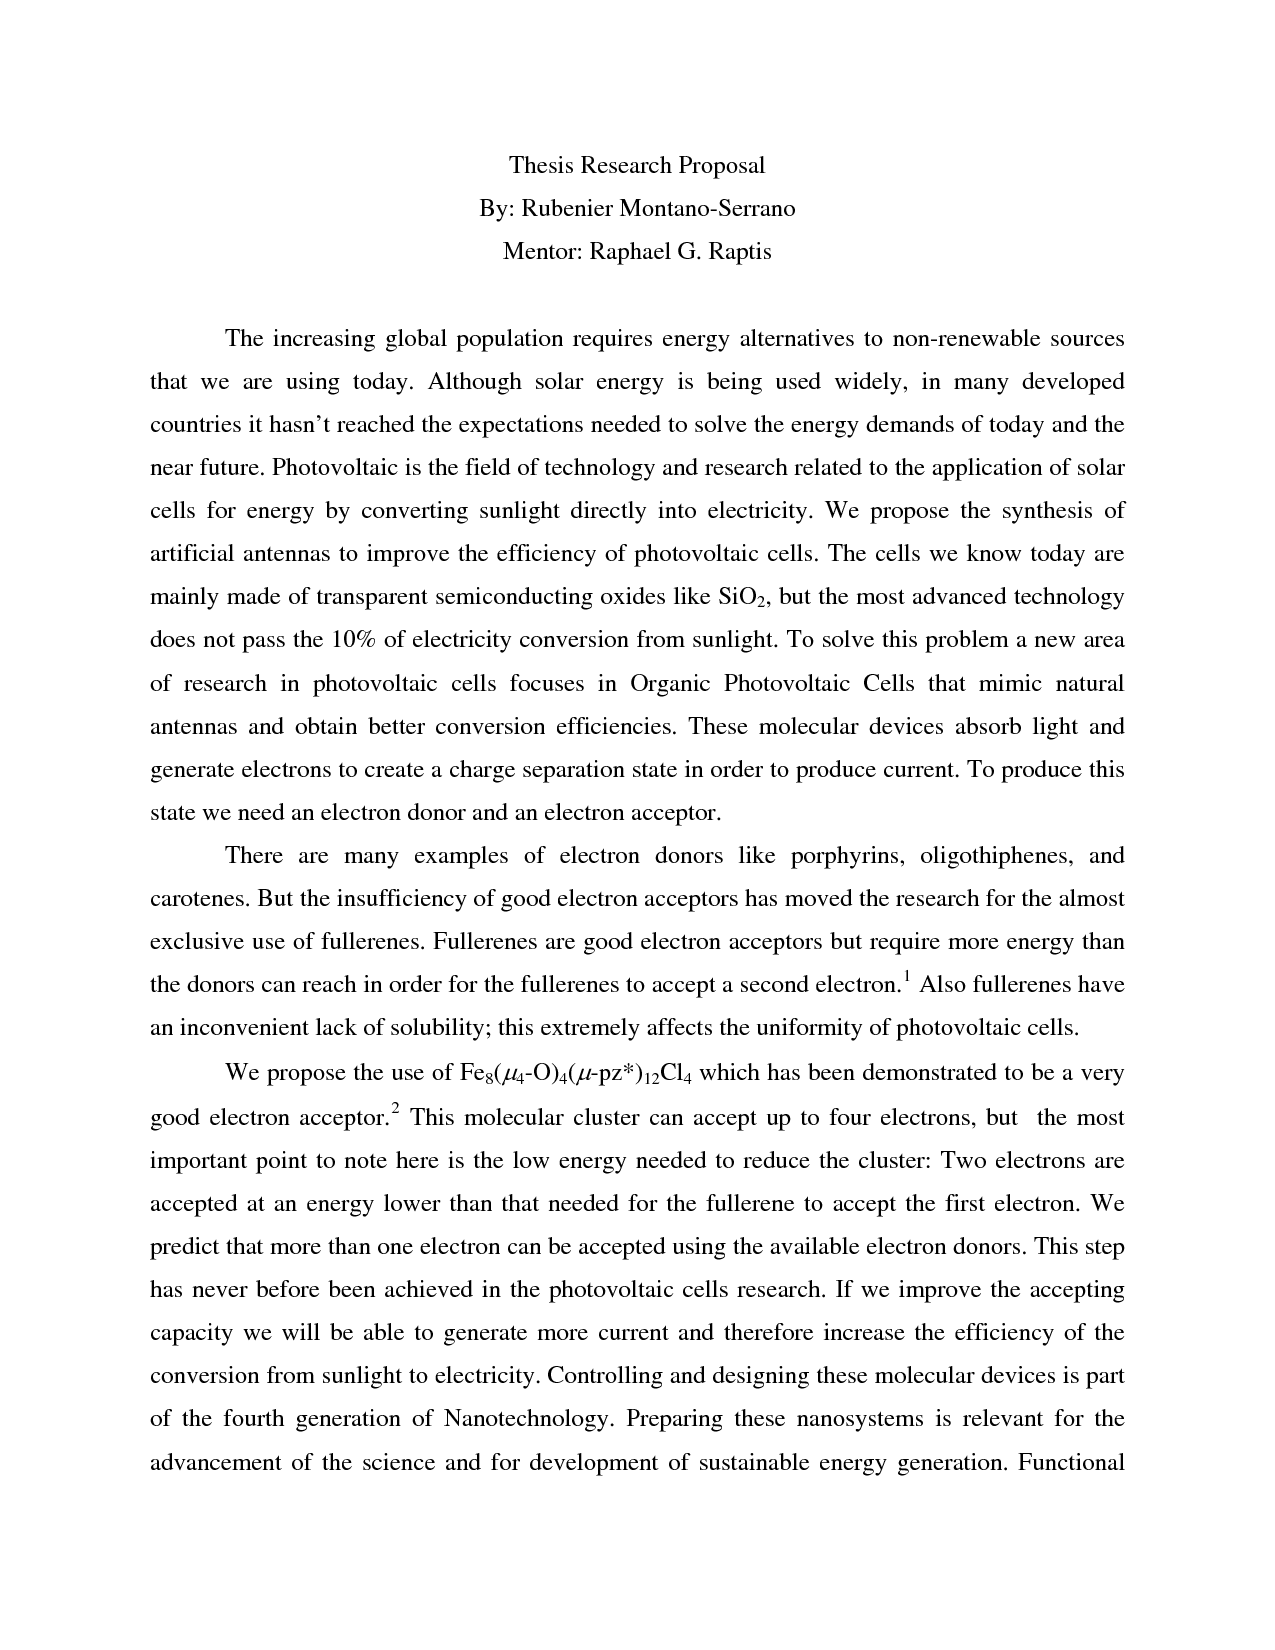 Conclusion Paragraph Format Research Paper The Paragraph